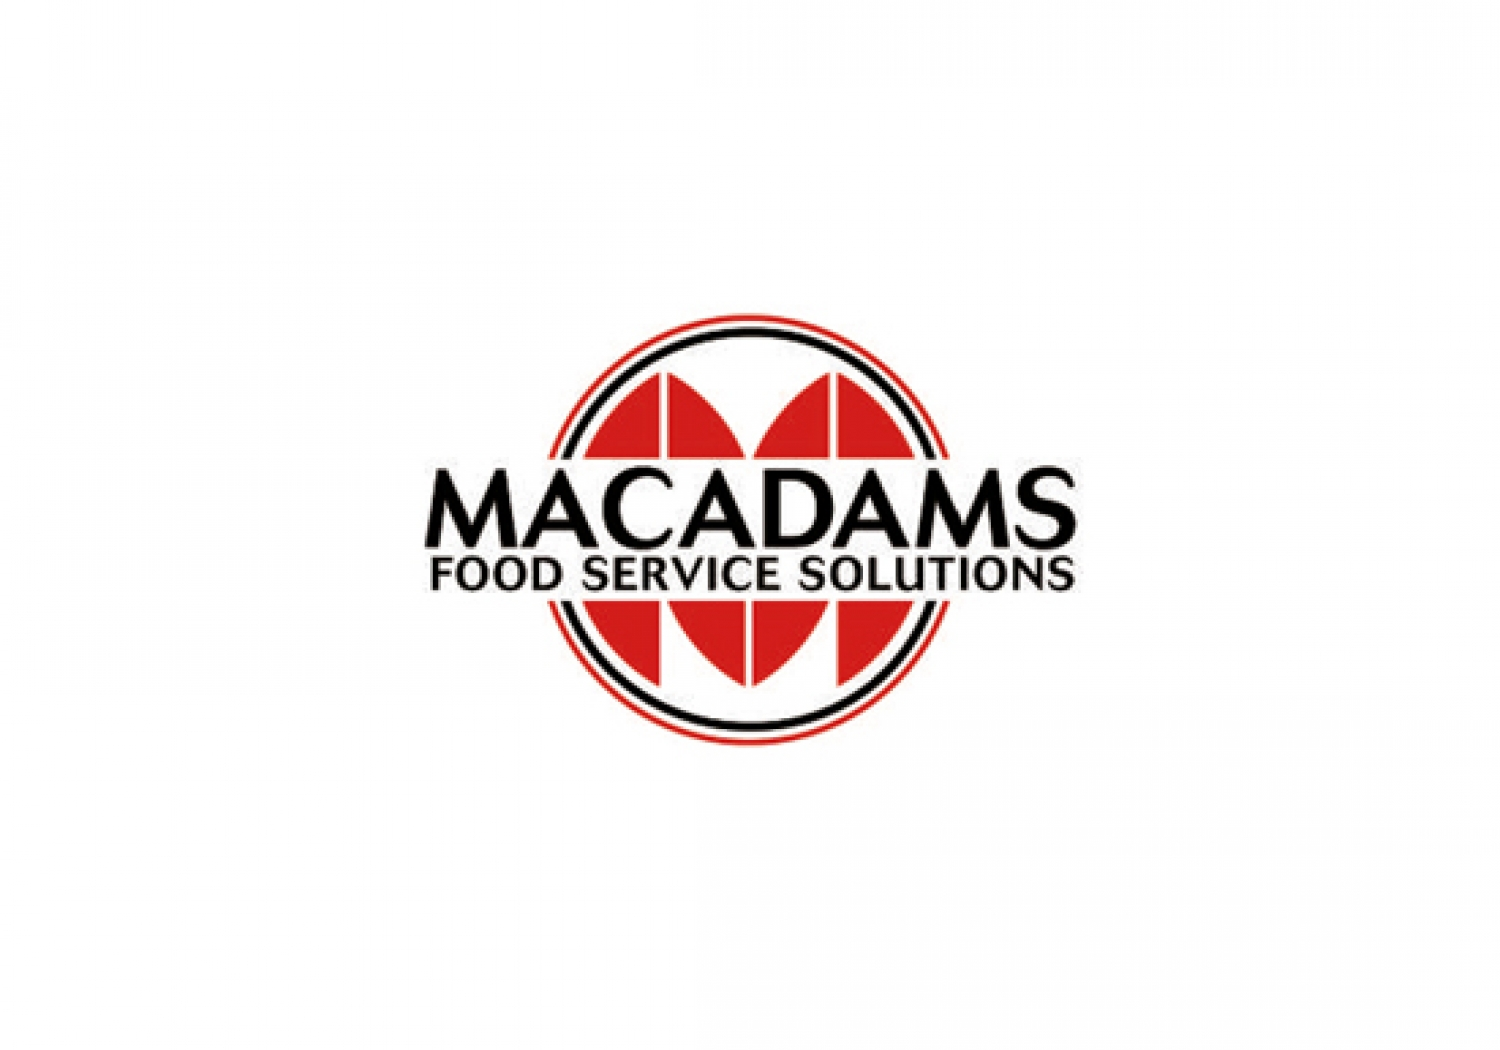 Macadams Food Service Solutions